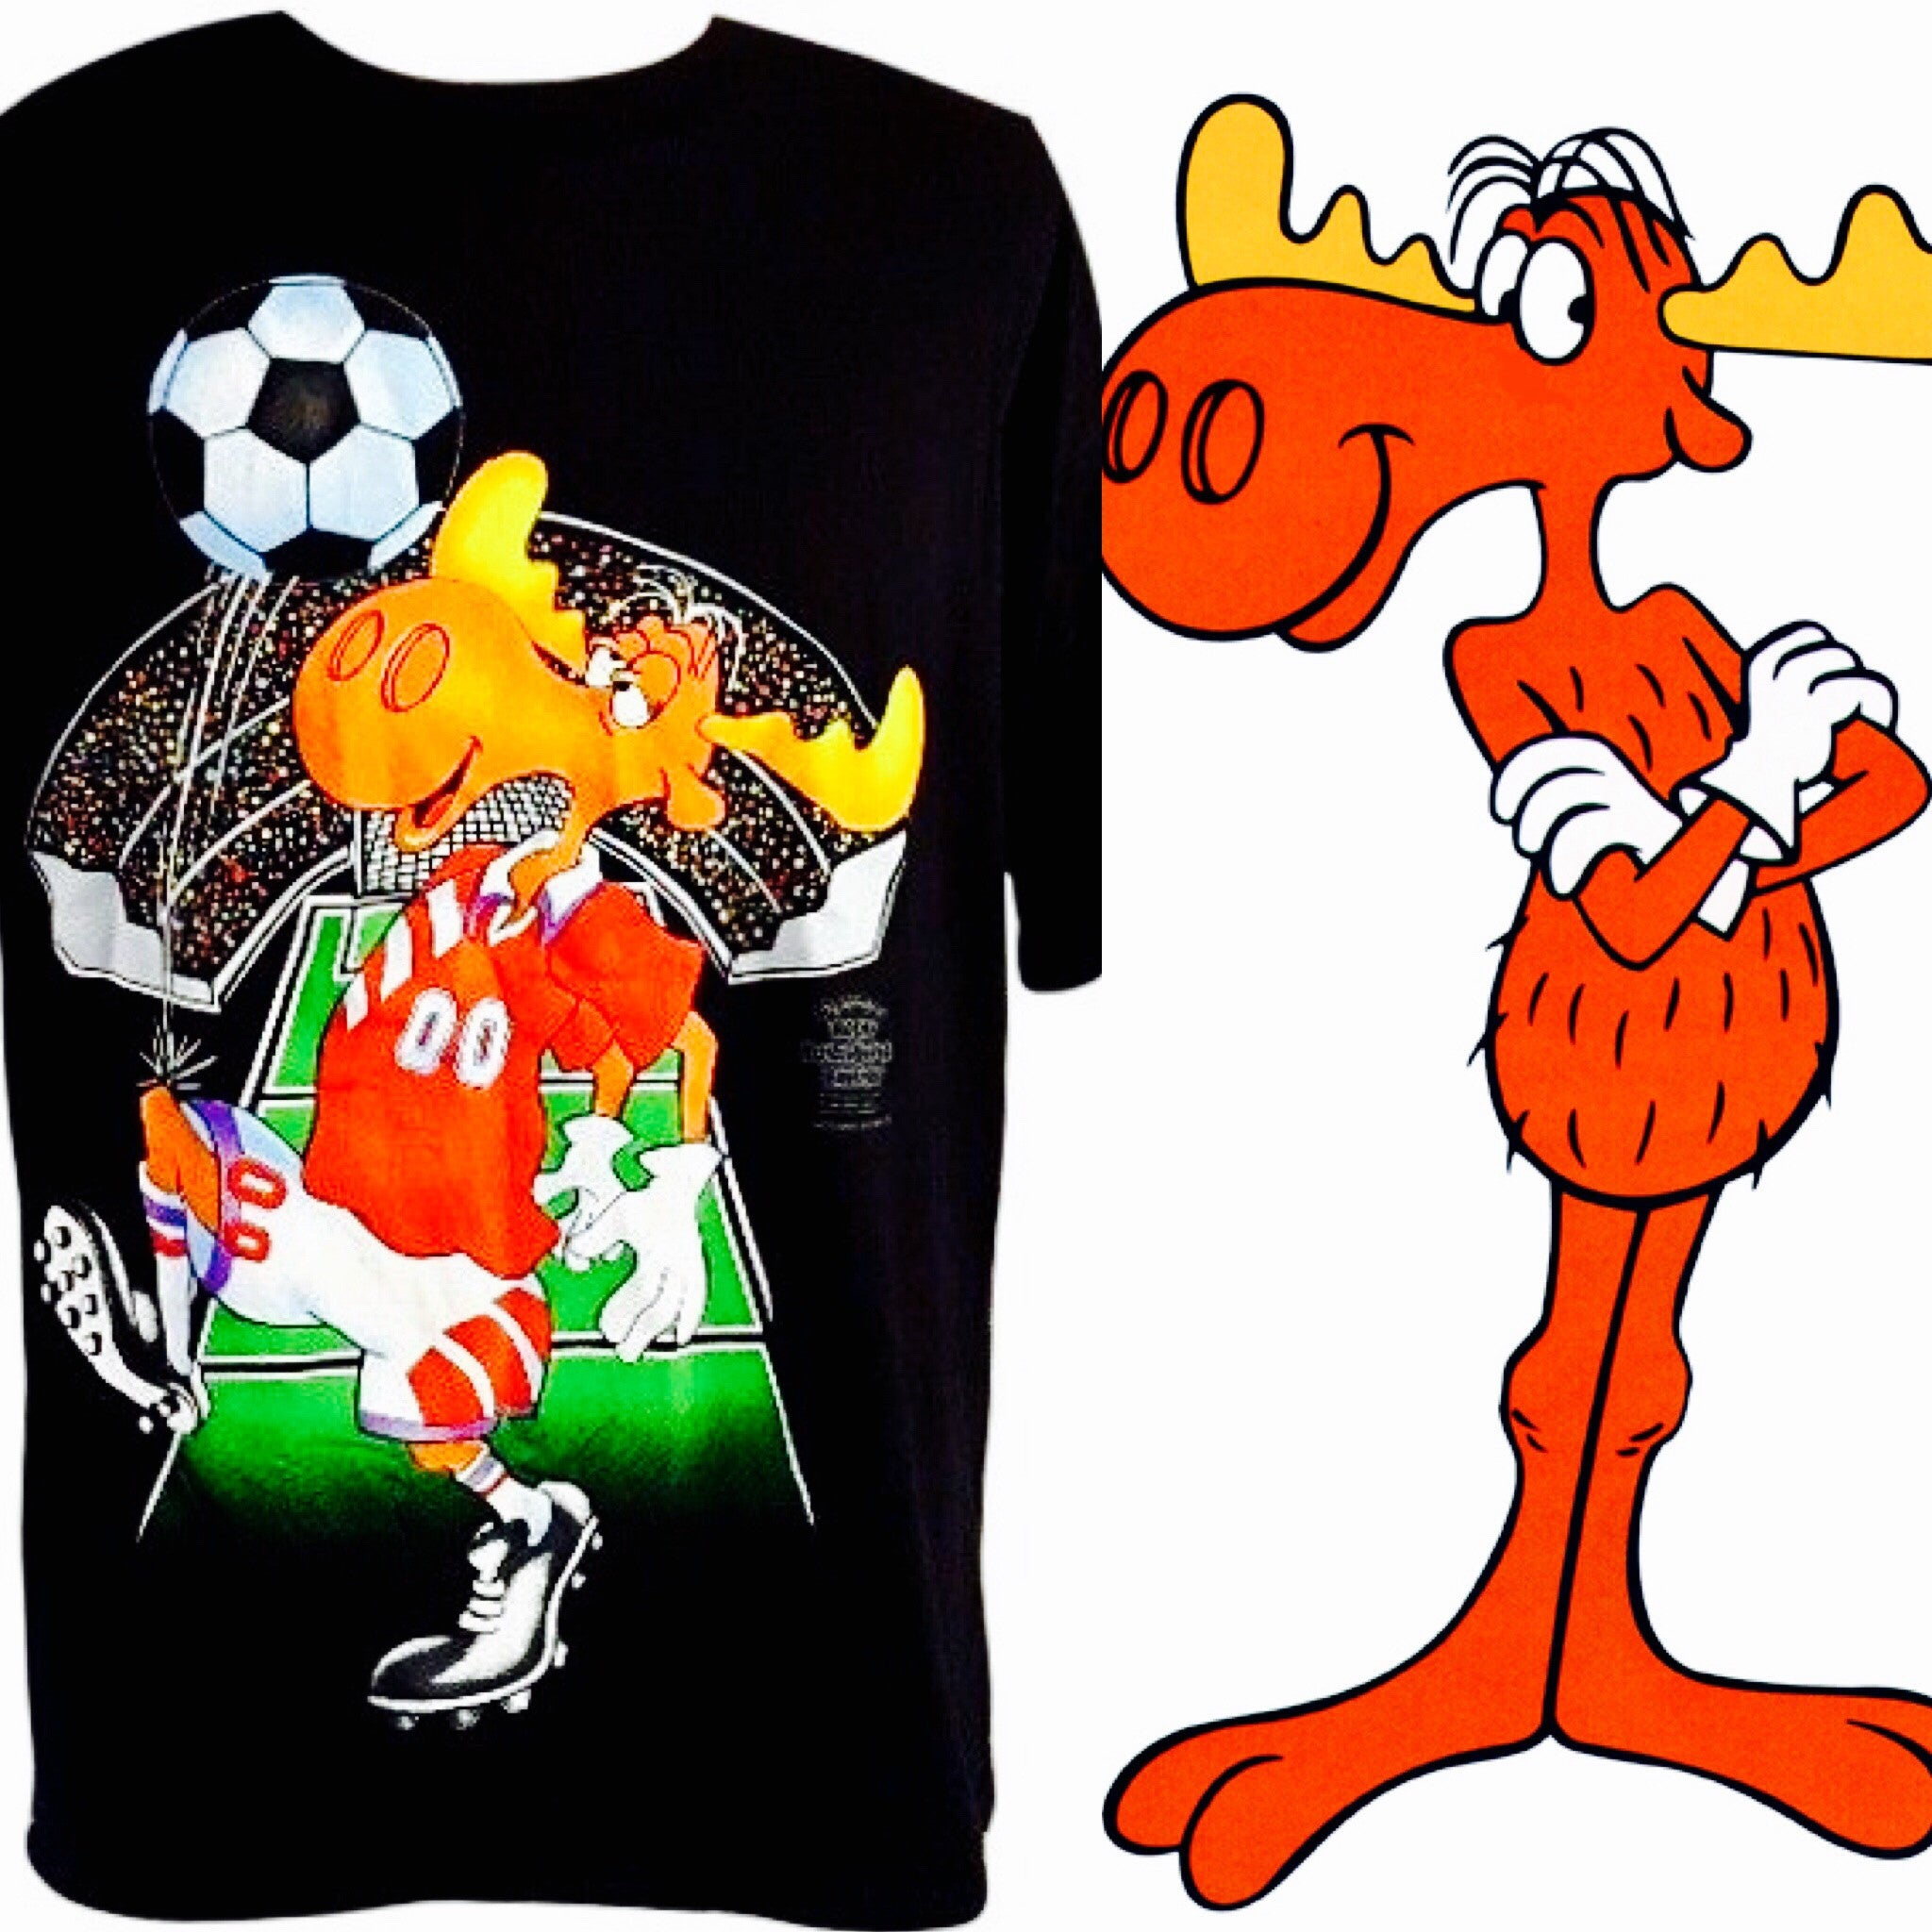 Bullwinkle World Cup 1994 Shirt - And Still